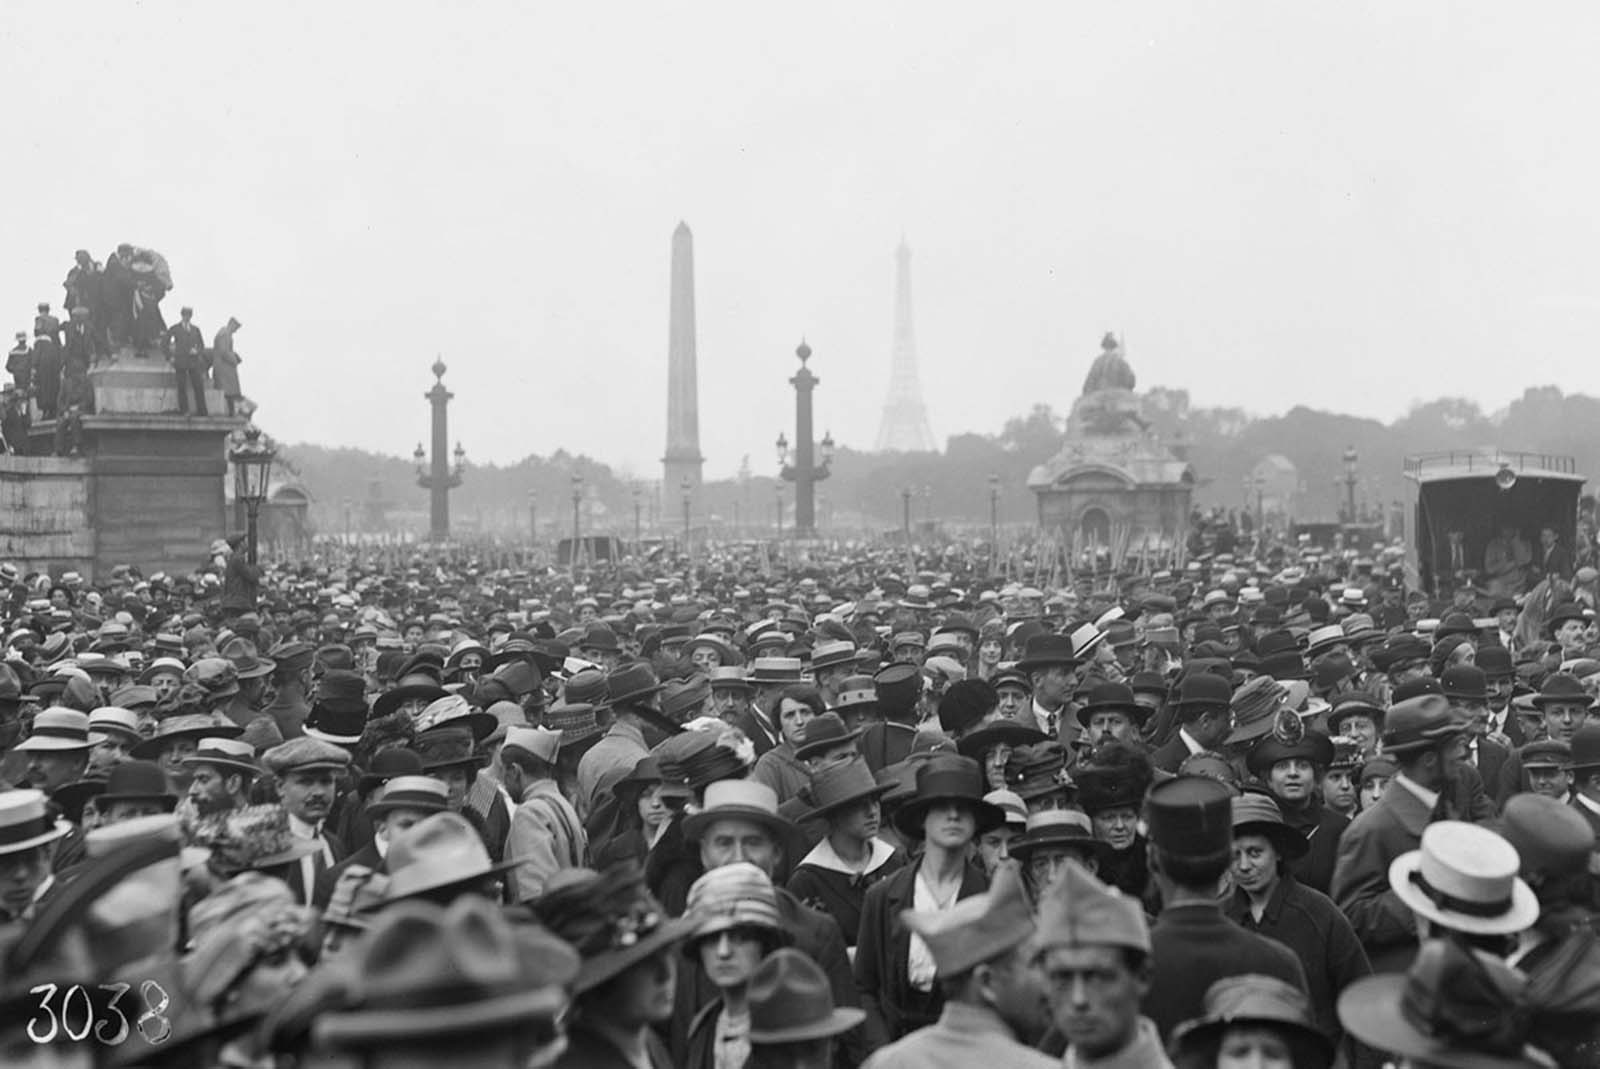 A crowd gathers in the Place de la Concorde, Paris, on July 4th, 1918, to see the American troops march in the parade to celebrate American Independence Day.